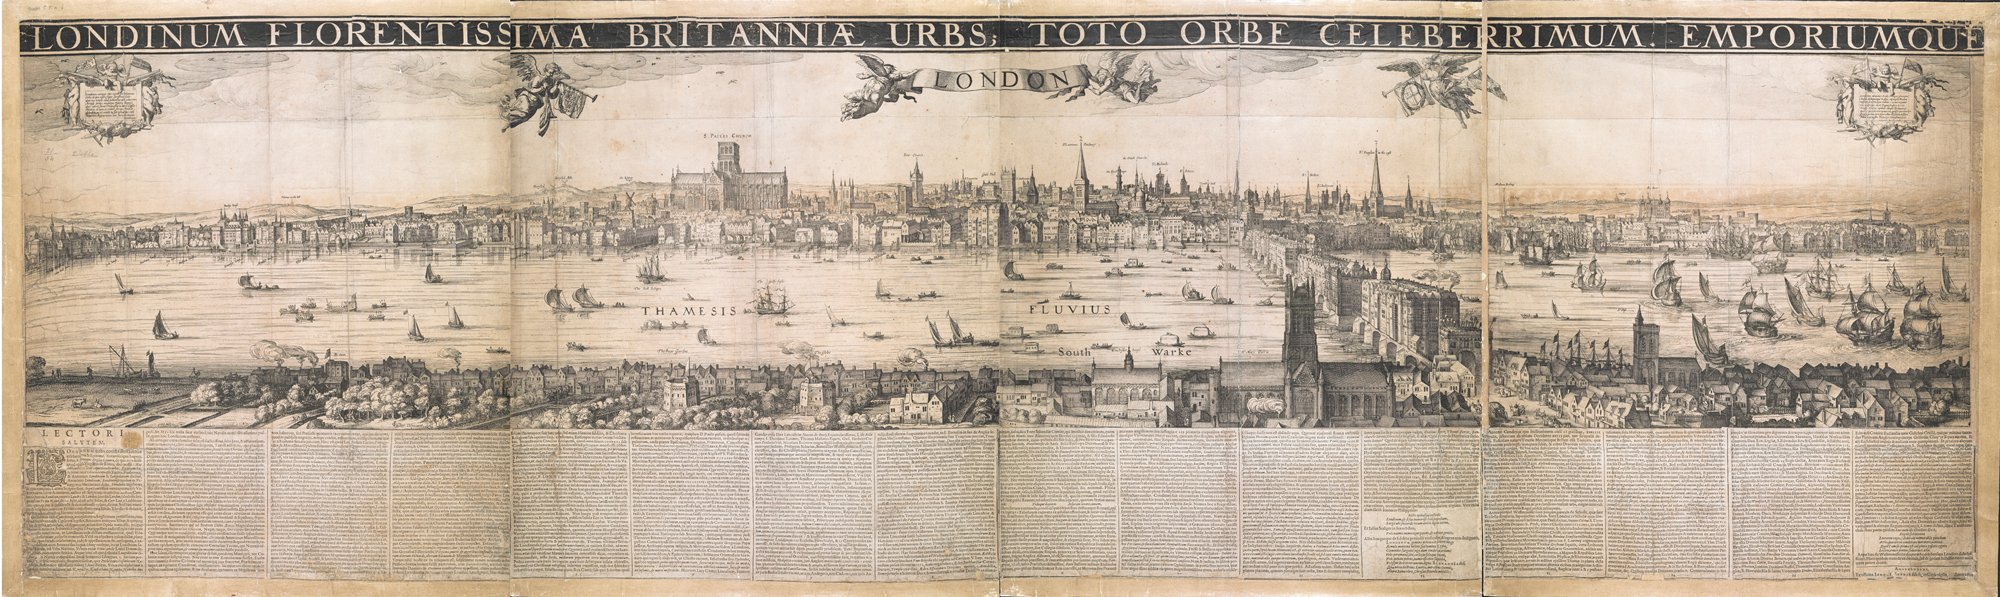 Engraved view of London by C.J. Visscher showing the Globe